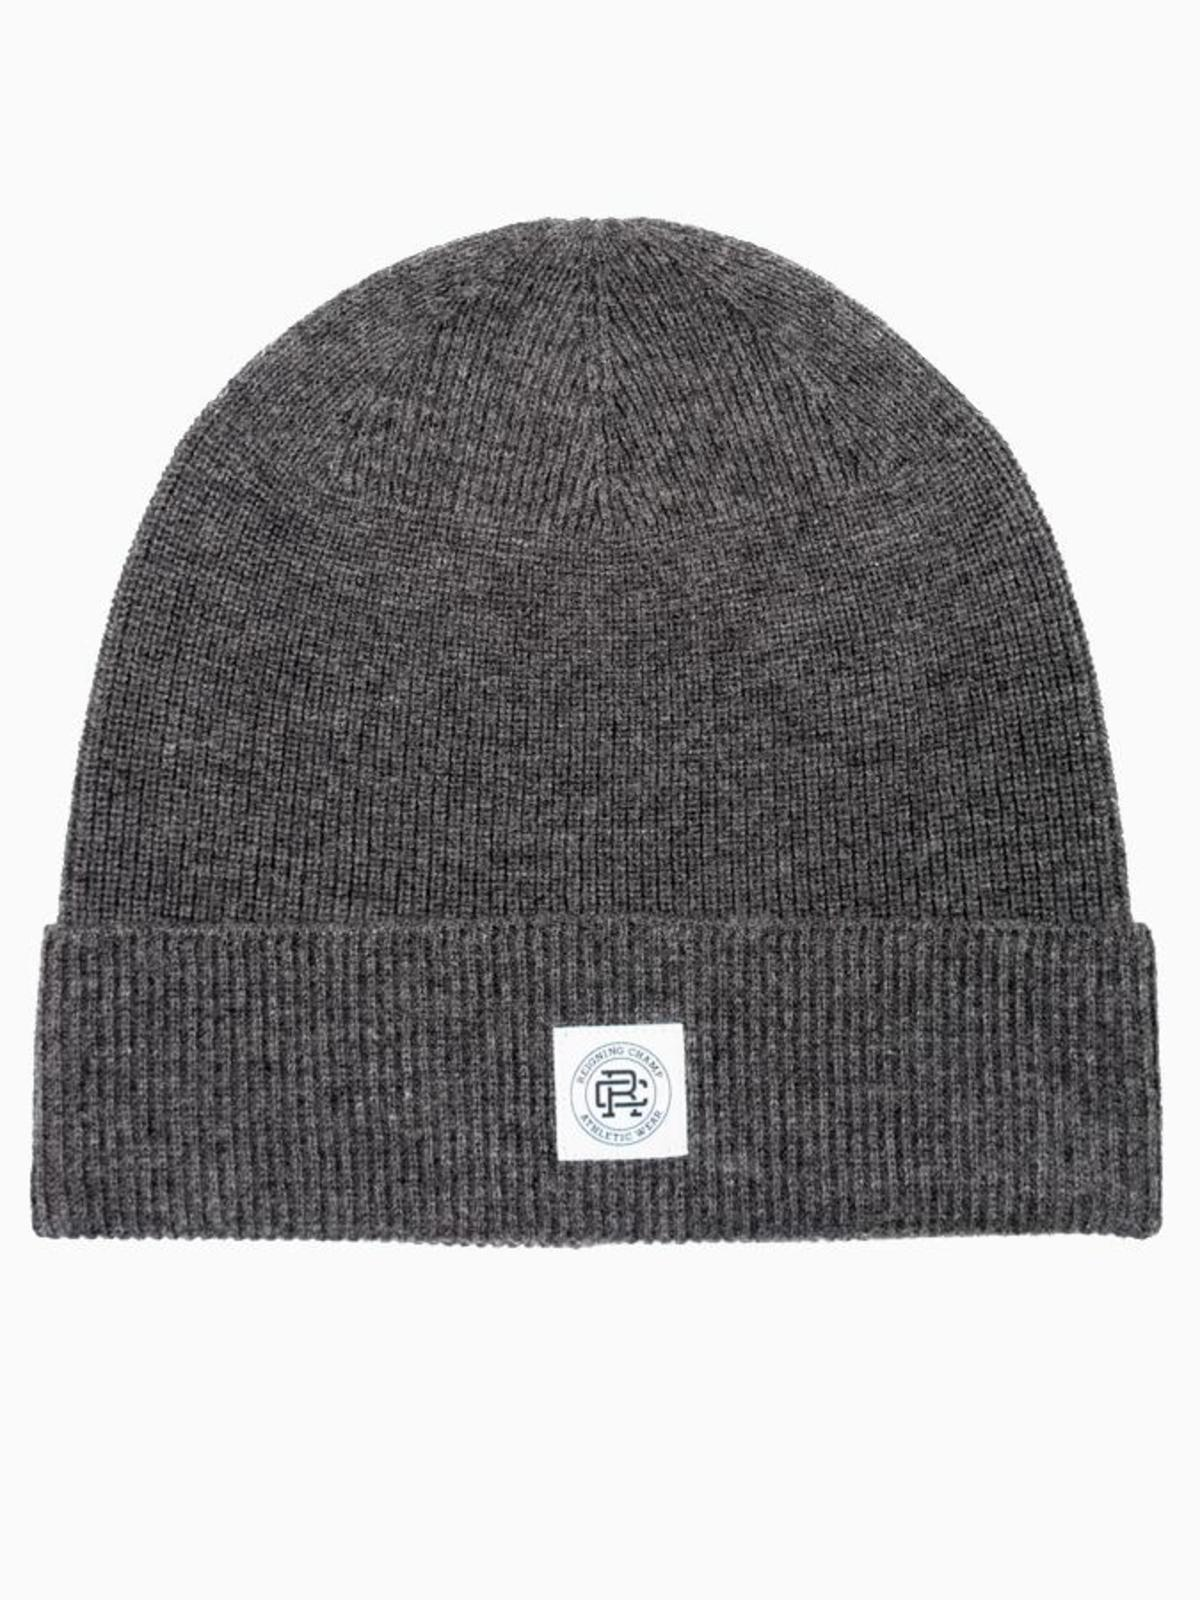 eee7b7733fe Reigning Champ Knit Merino Wool Classic Beanie - Heather Charcoal ...